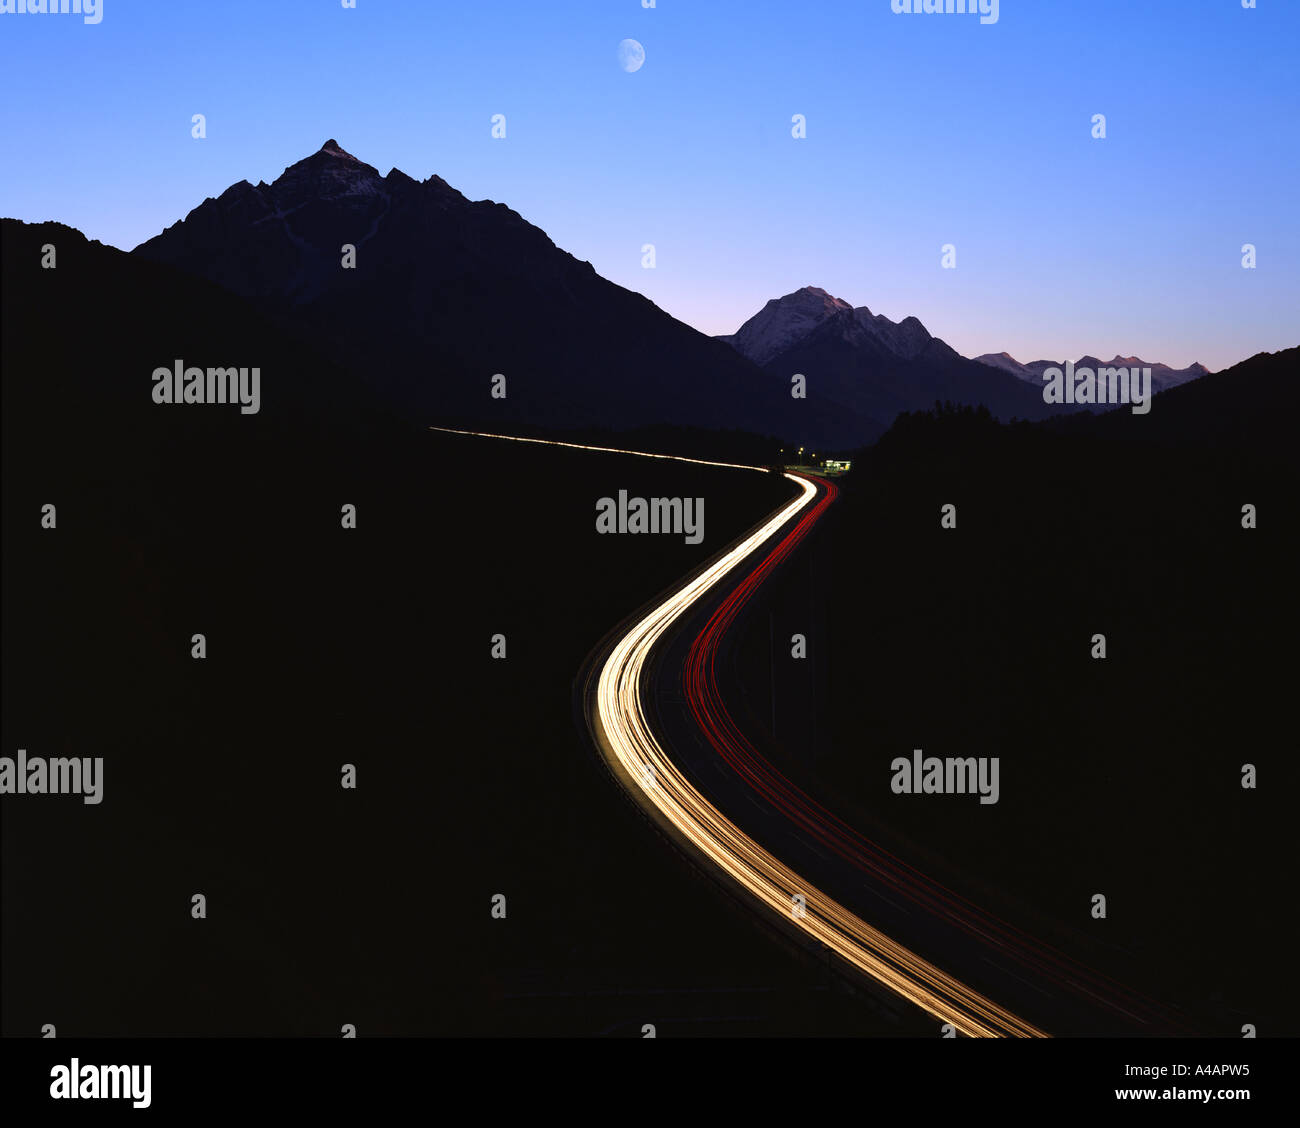 AT - TYROL:  Brenner Autobahn by night (Europabrücke) - Stock Image